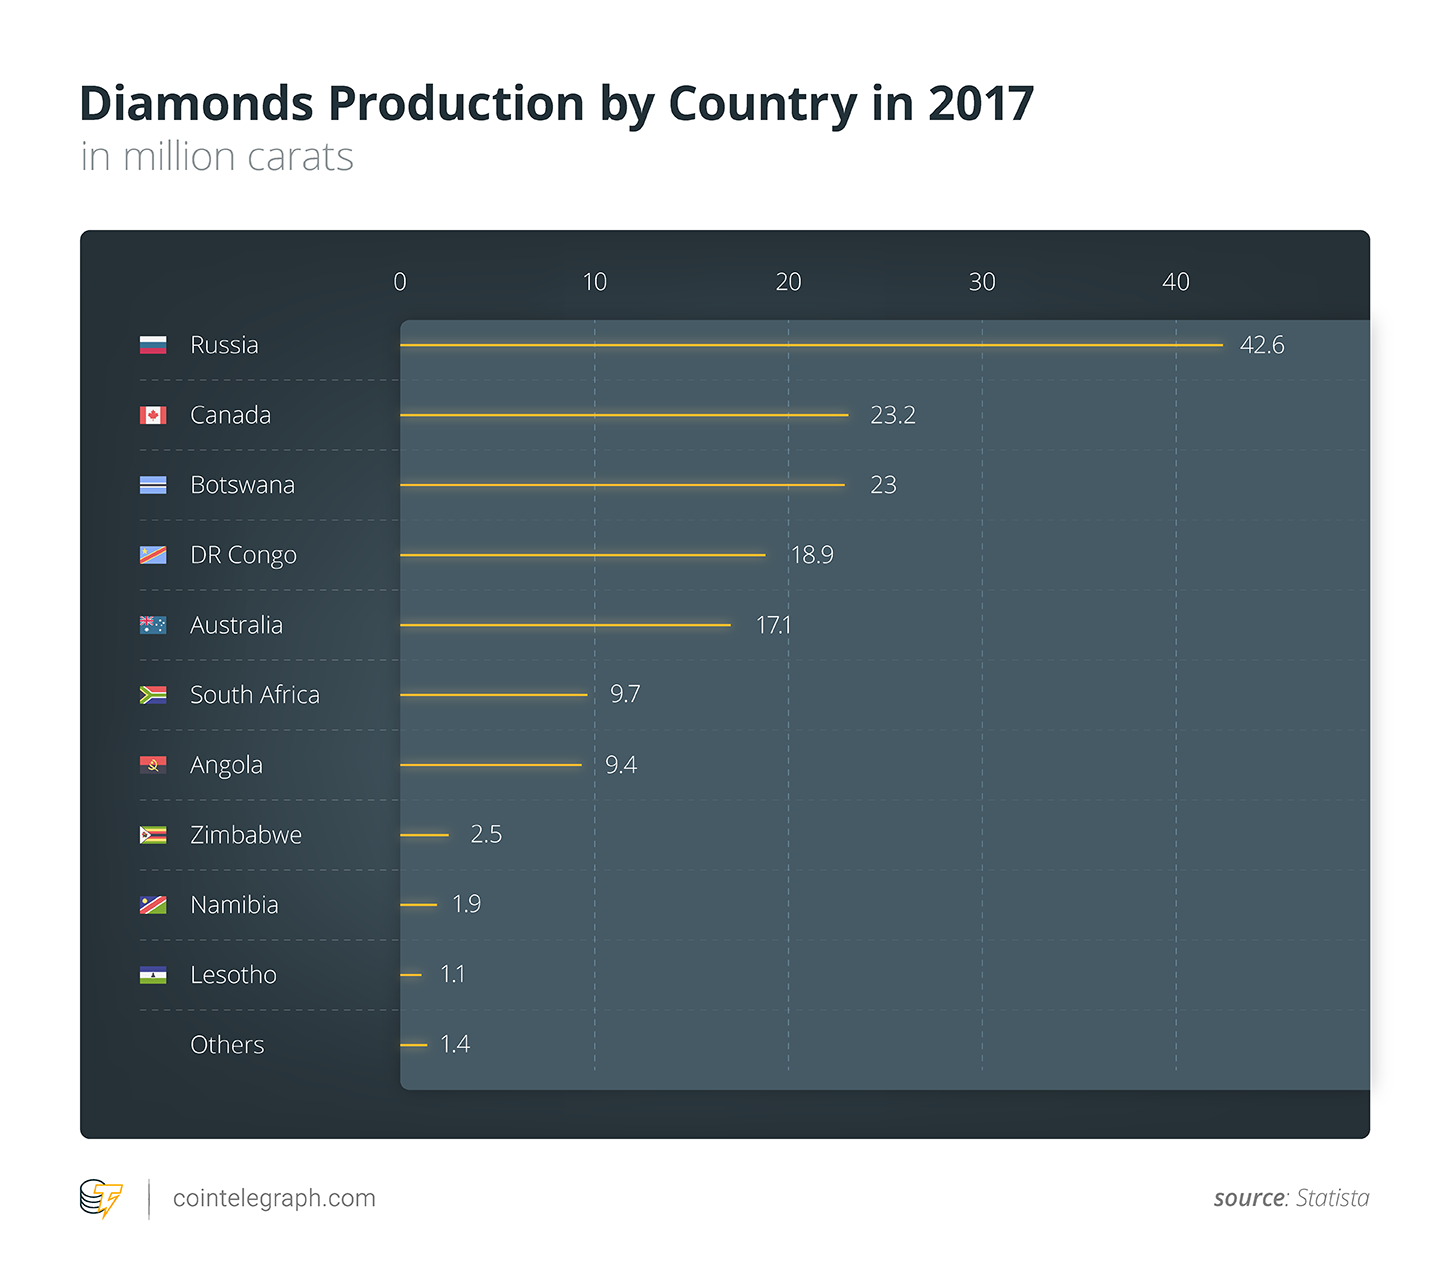 Diamonds Production by Country in 2017